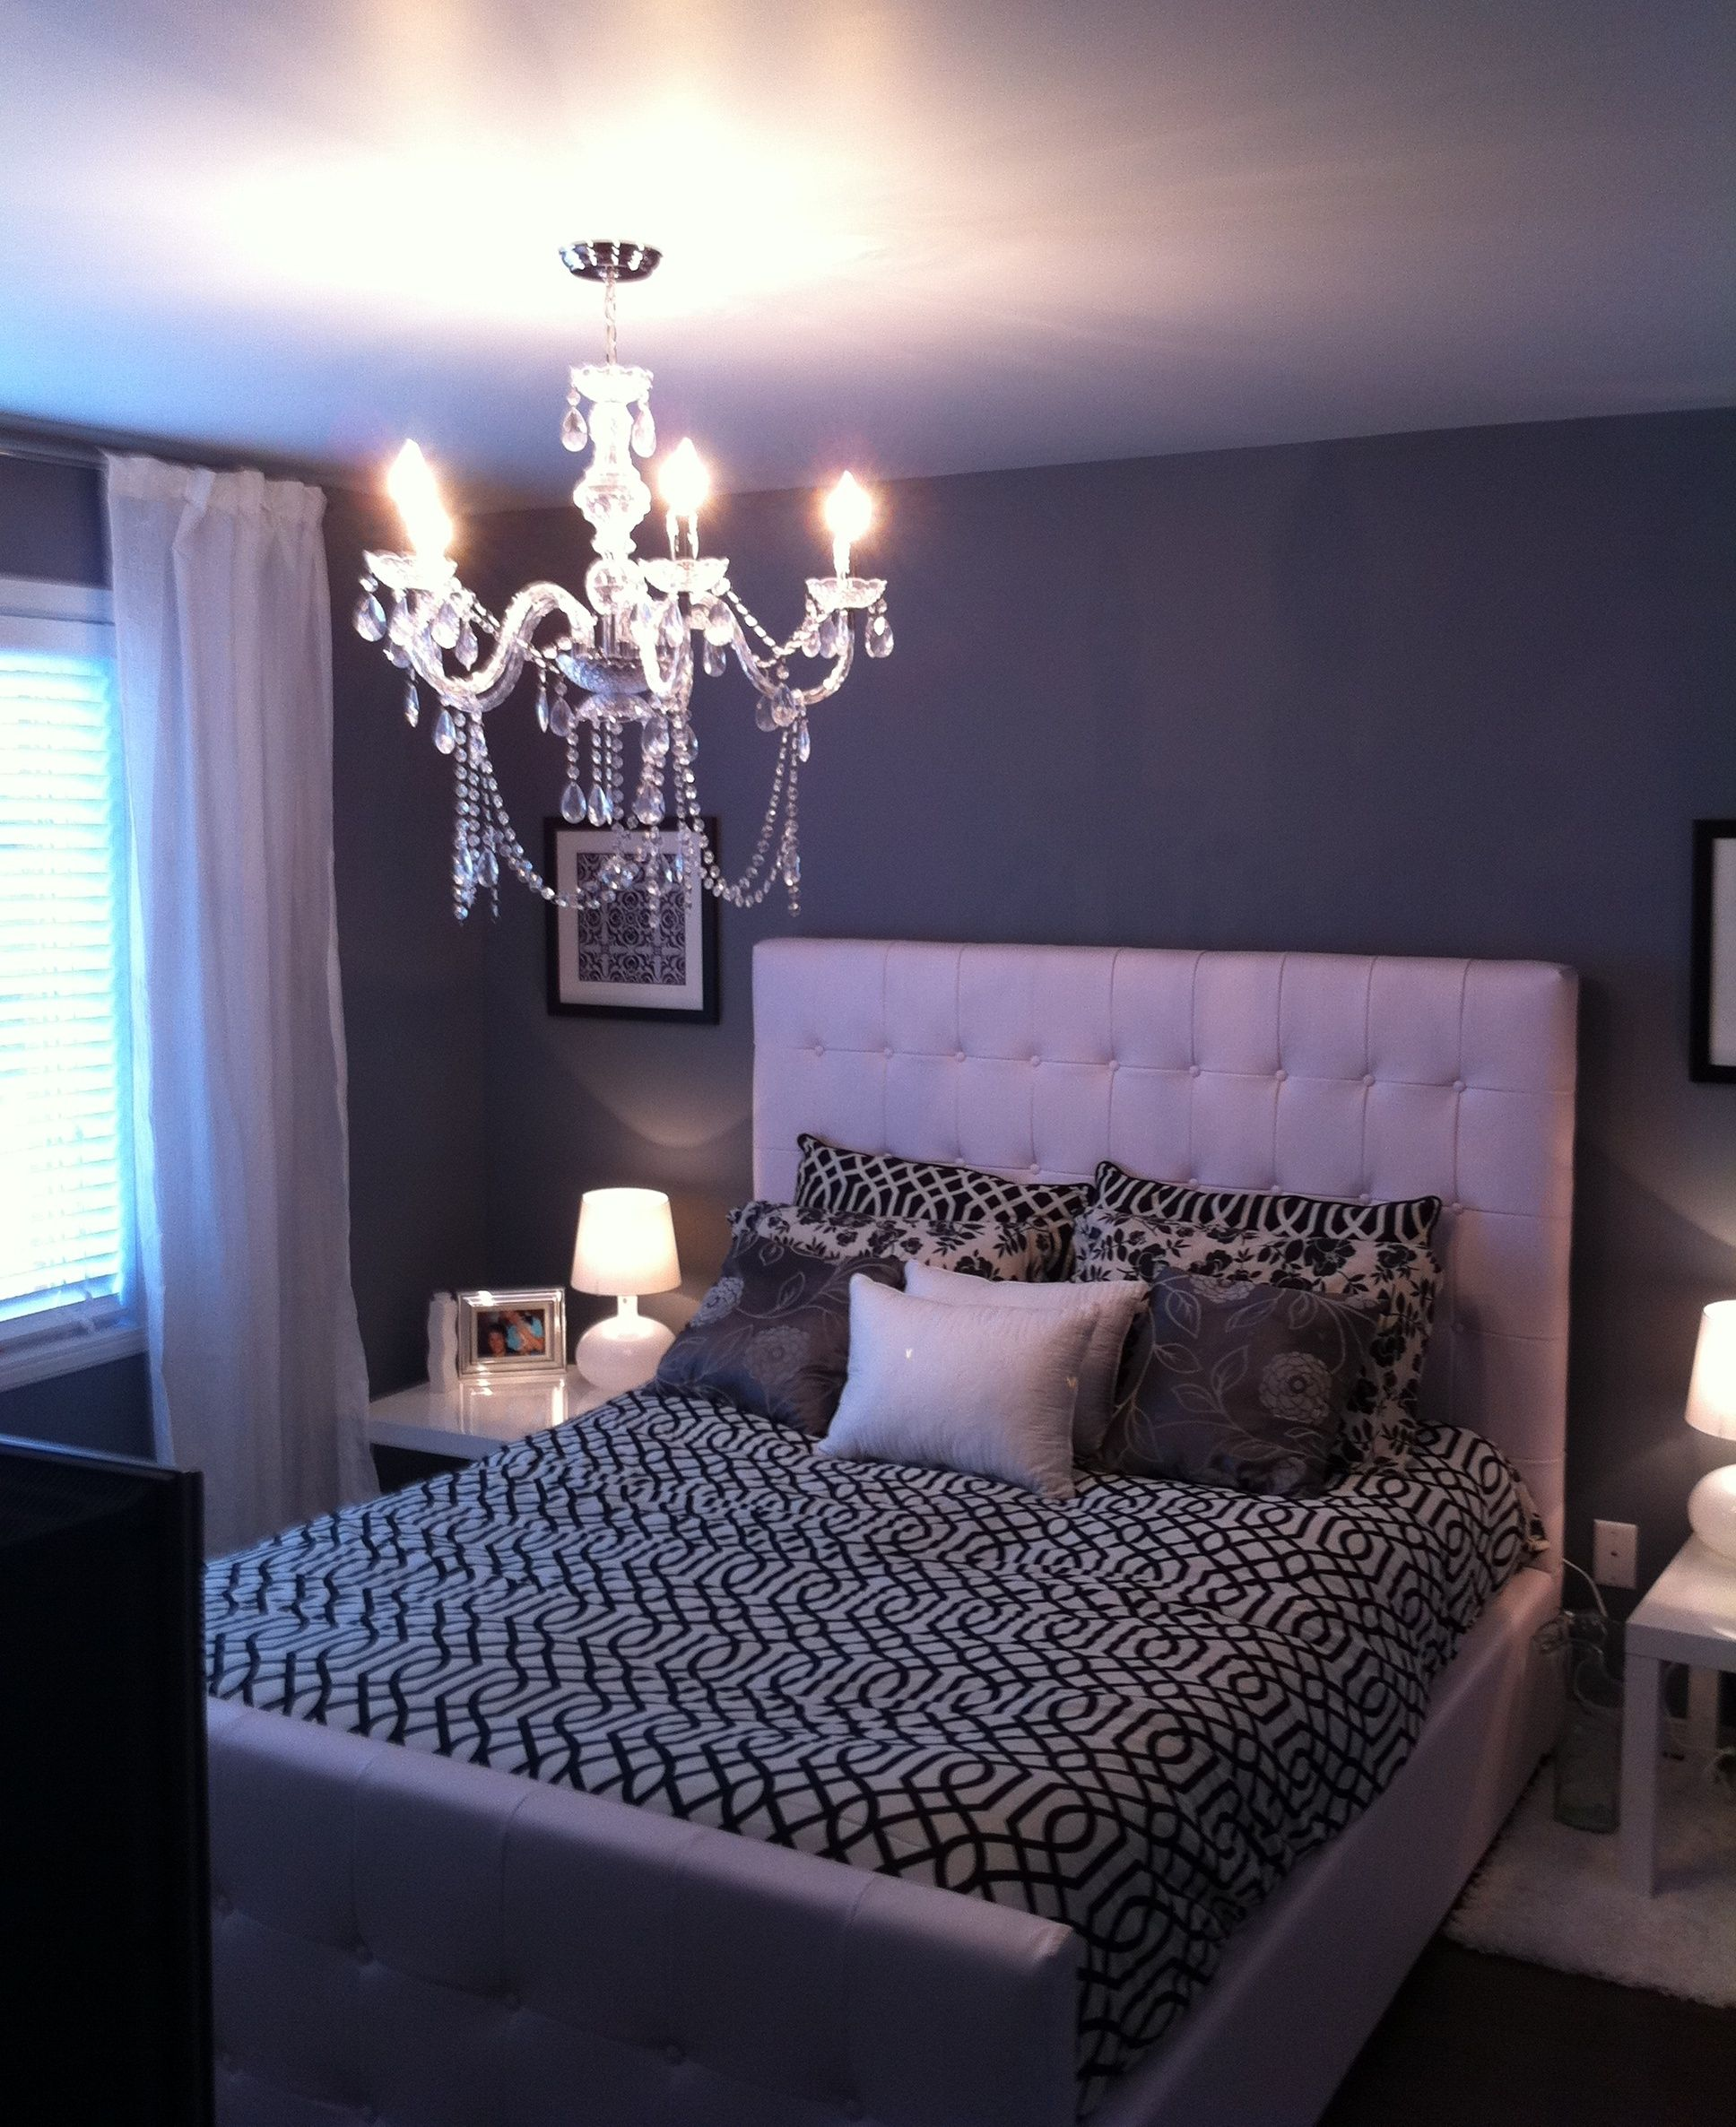 Small Bedroom Crystal Chandeliers Small Bedroom